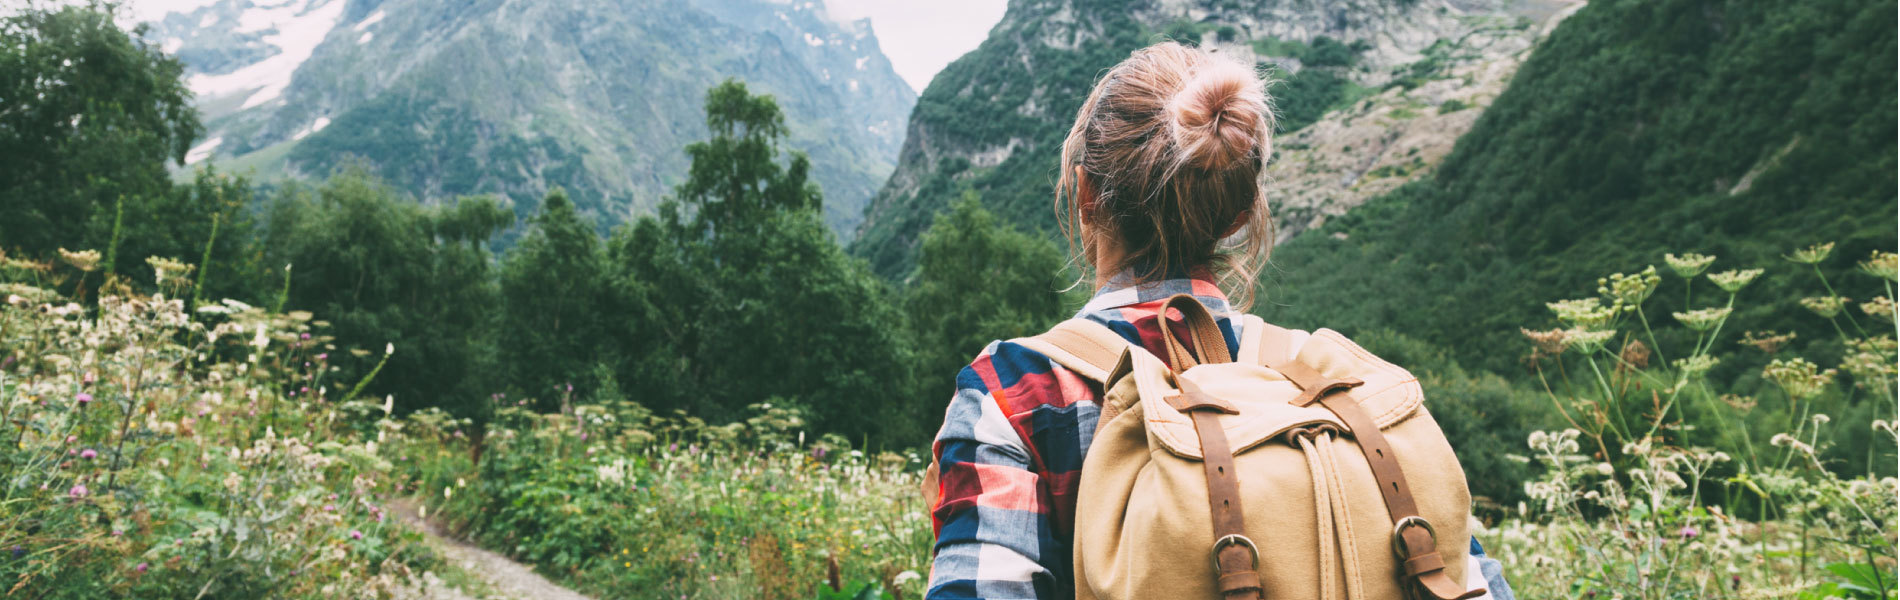 5 Amazing Hikes to Do for your Bucketlist